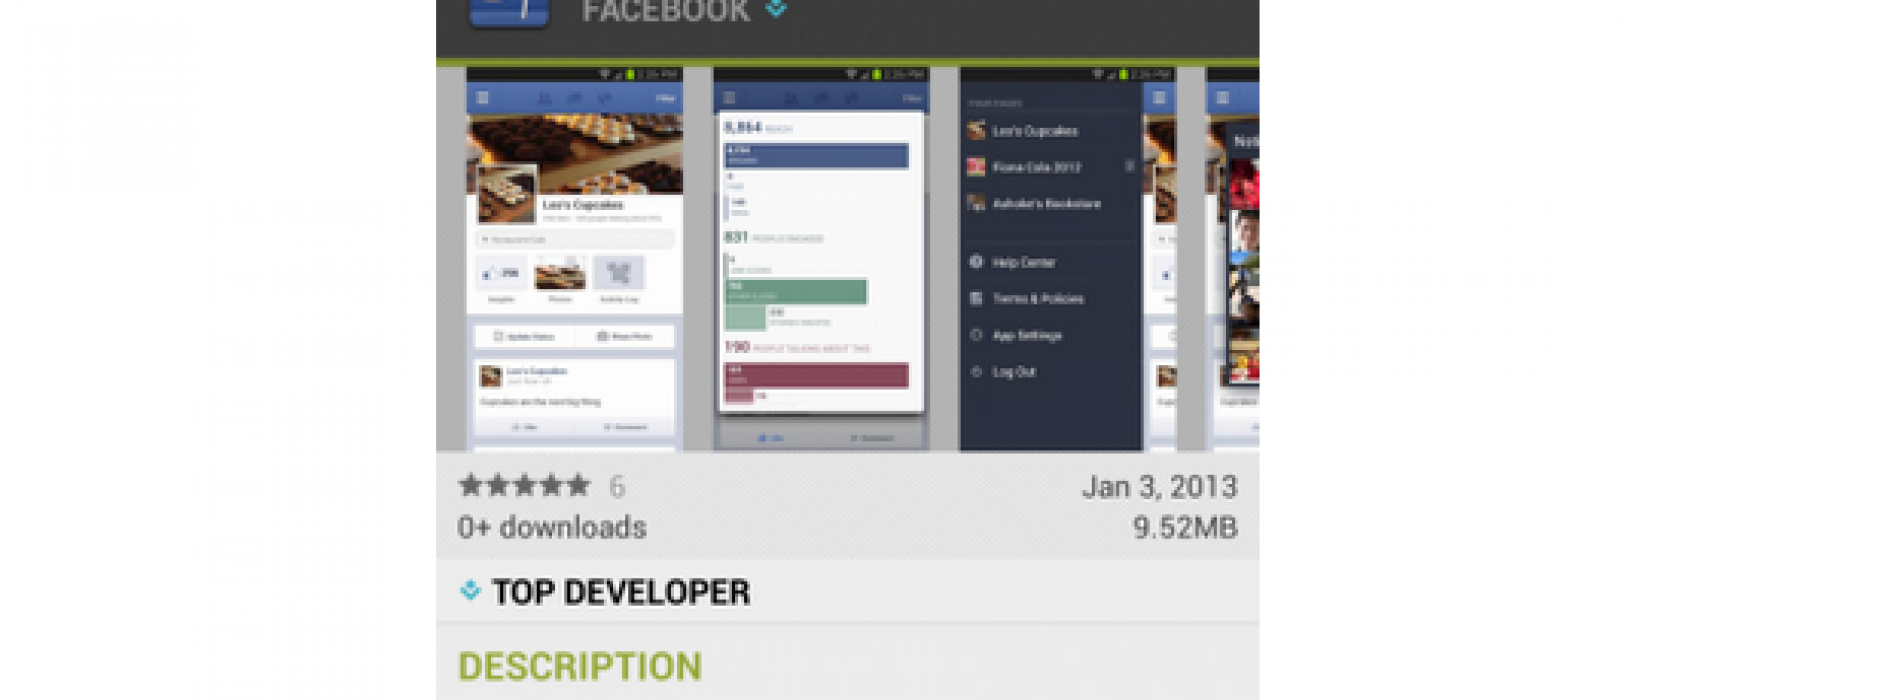 Facebook Releases Pages Manager for Android